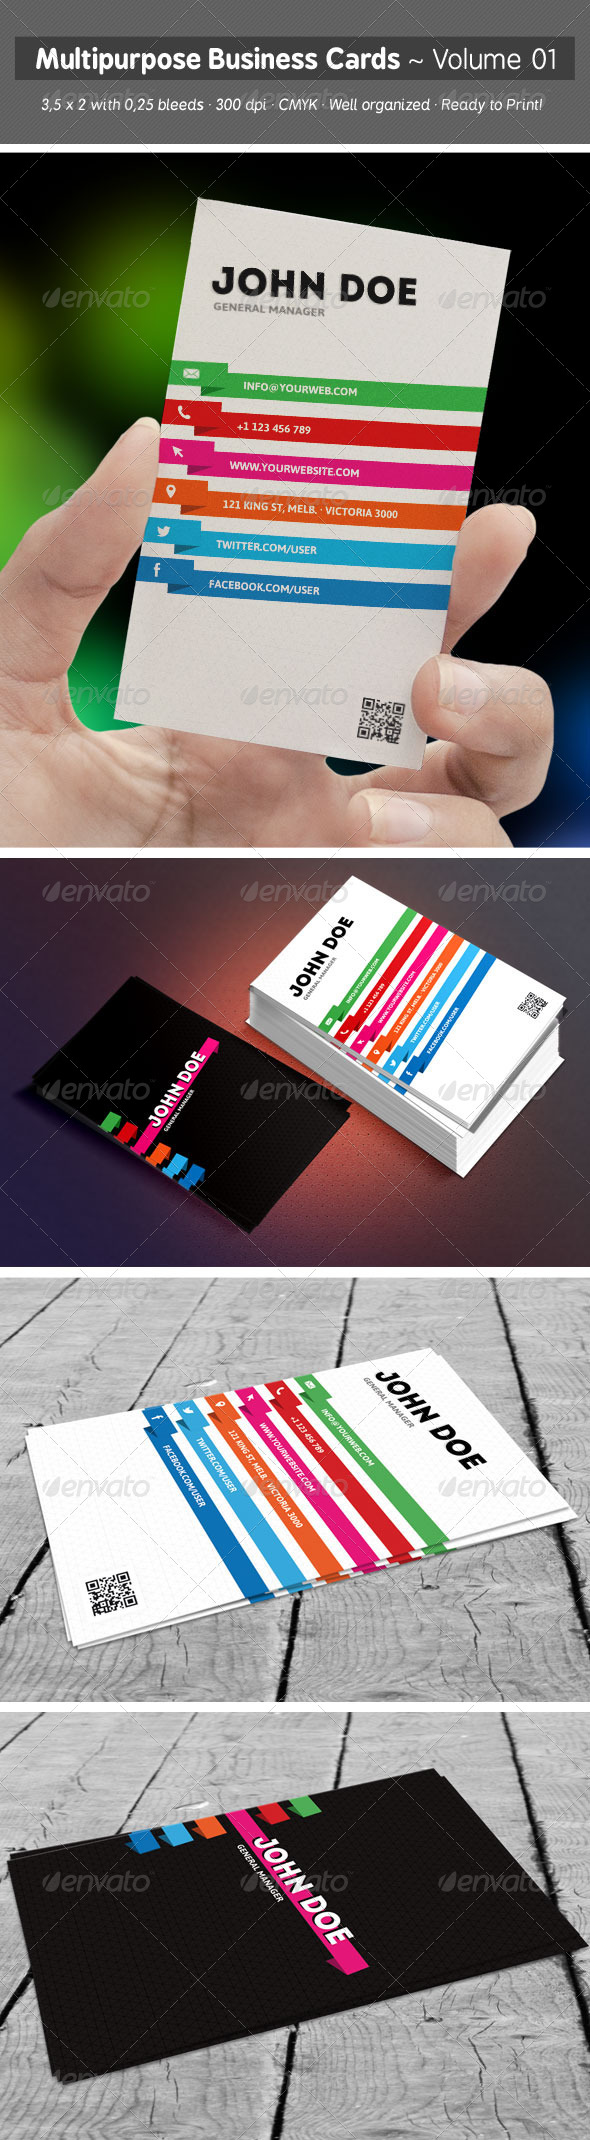 GraphicRiver Multipurpose Business Cards Volume 01 6808803